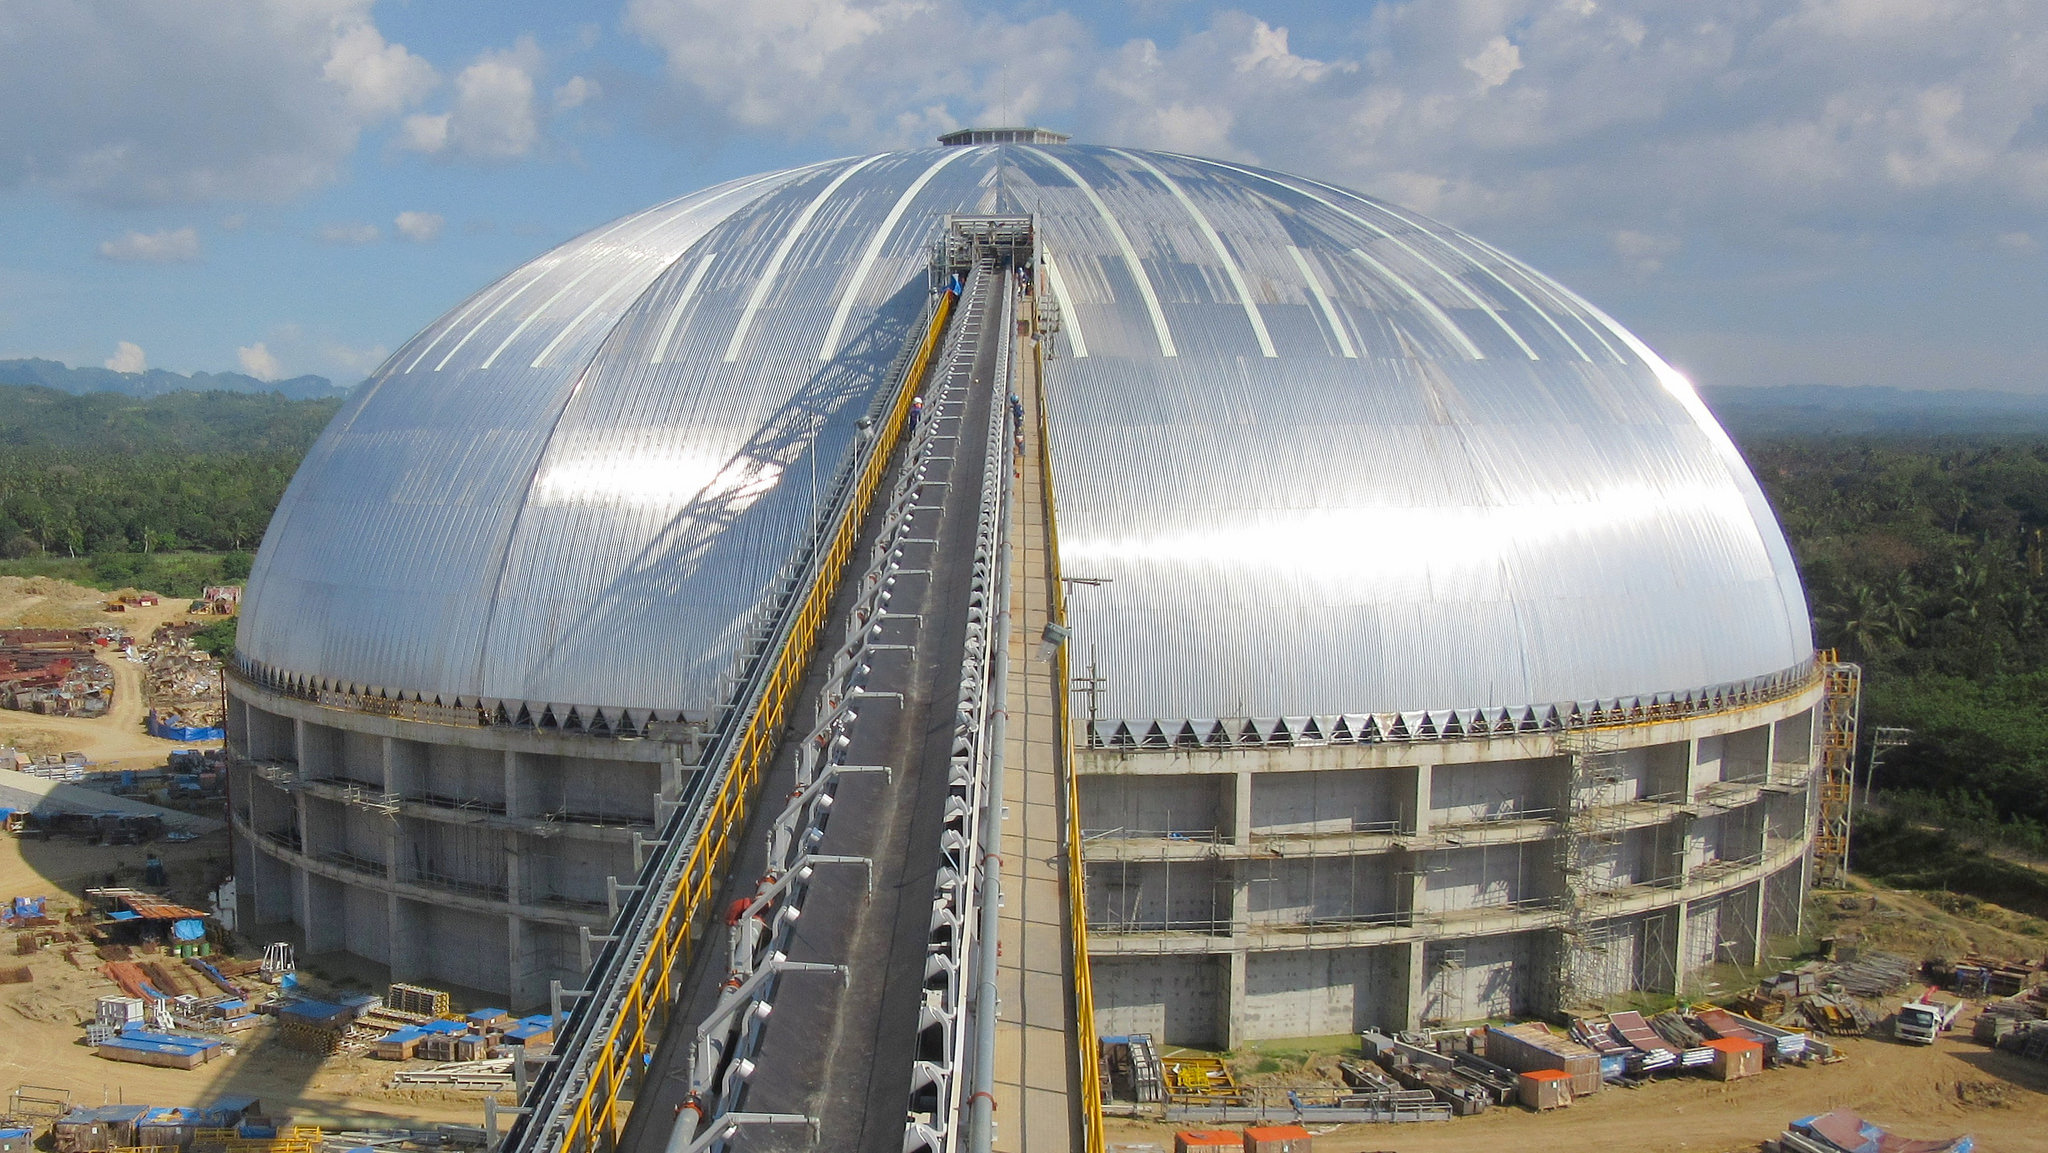 Therma Visayas Energy 126m dome upon completion.